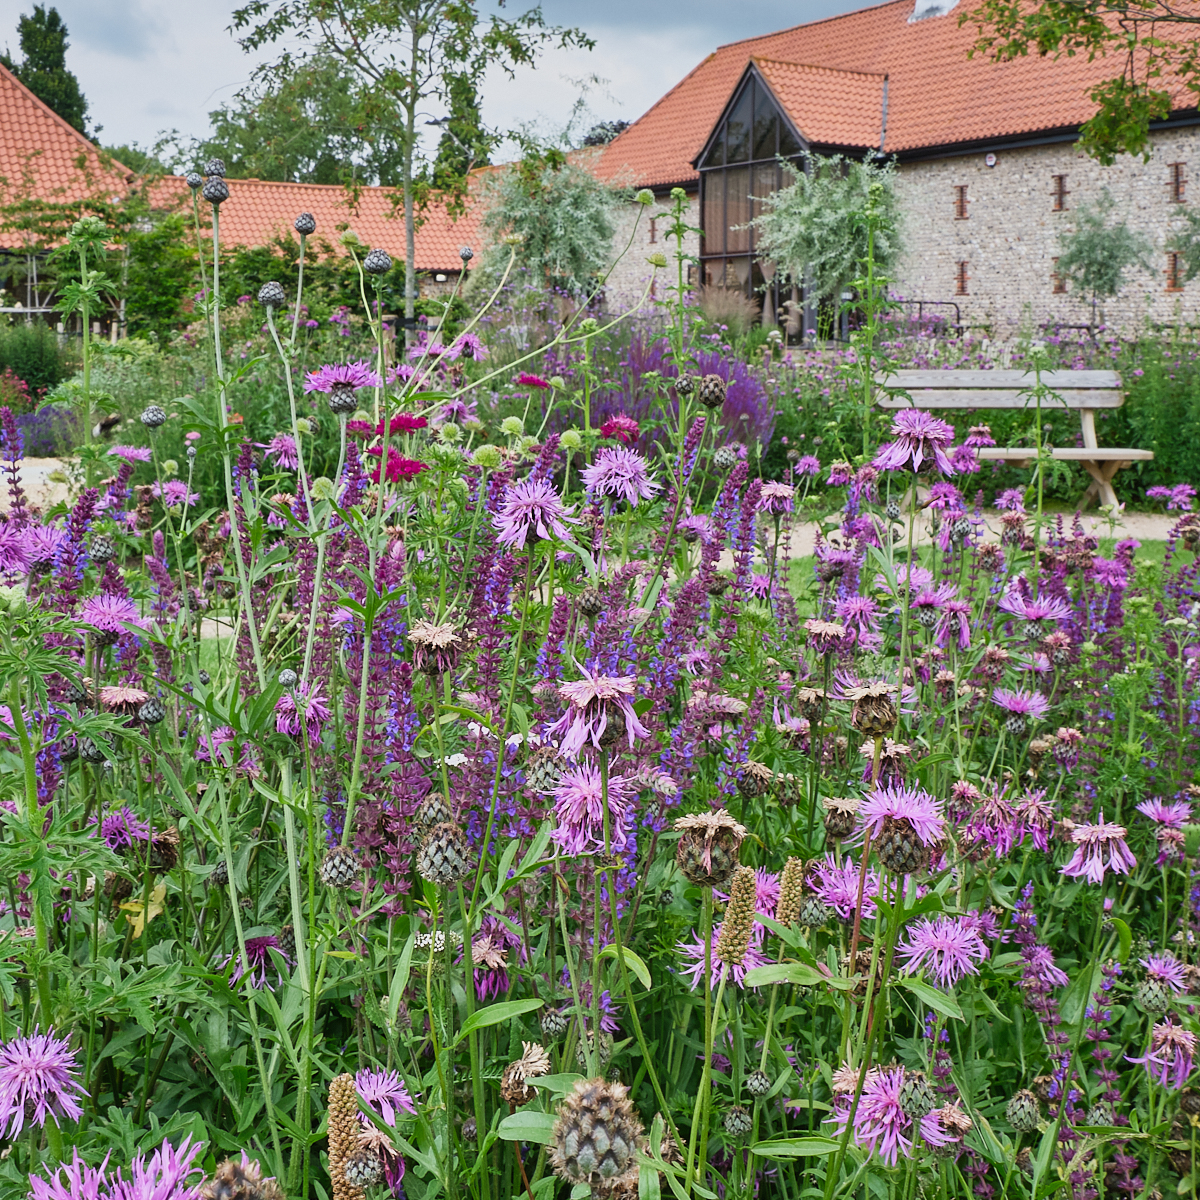 Purple prairie or meadow style plantign outside an old Sussex barn